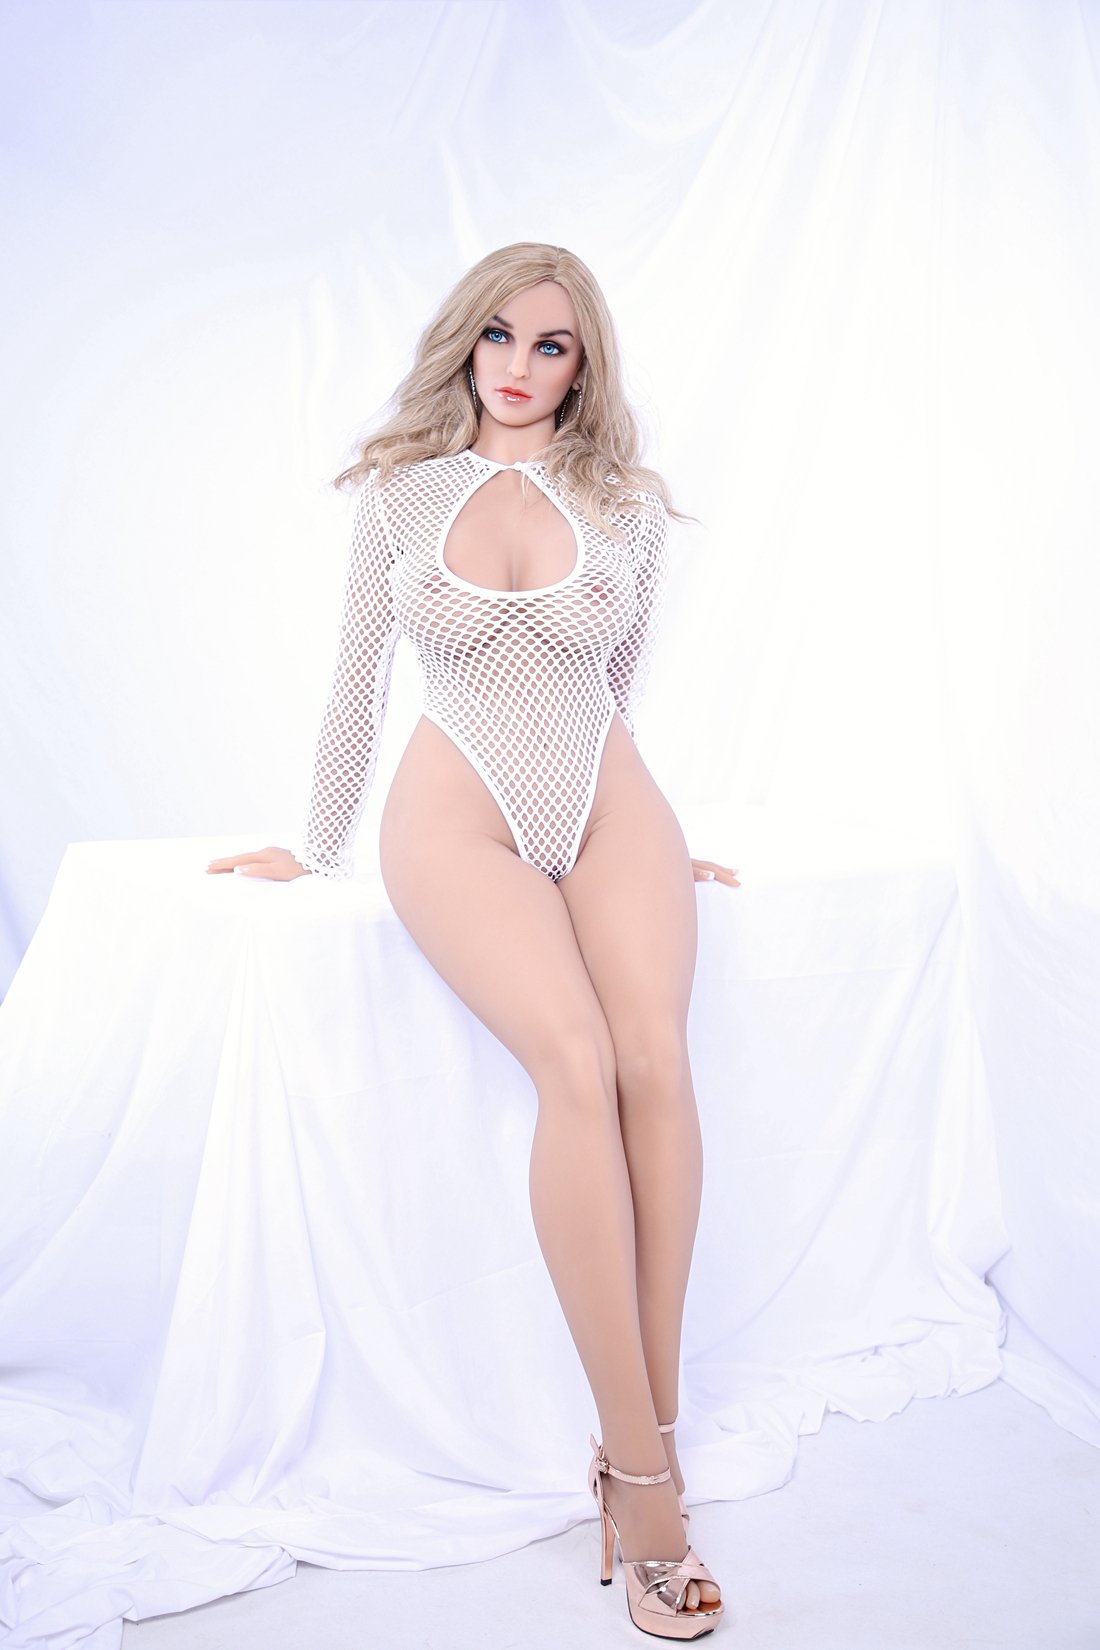 valerie 161cm af blonde medium tits athletic tpe sex doll(2)